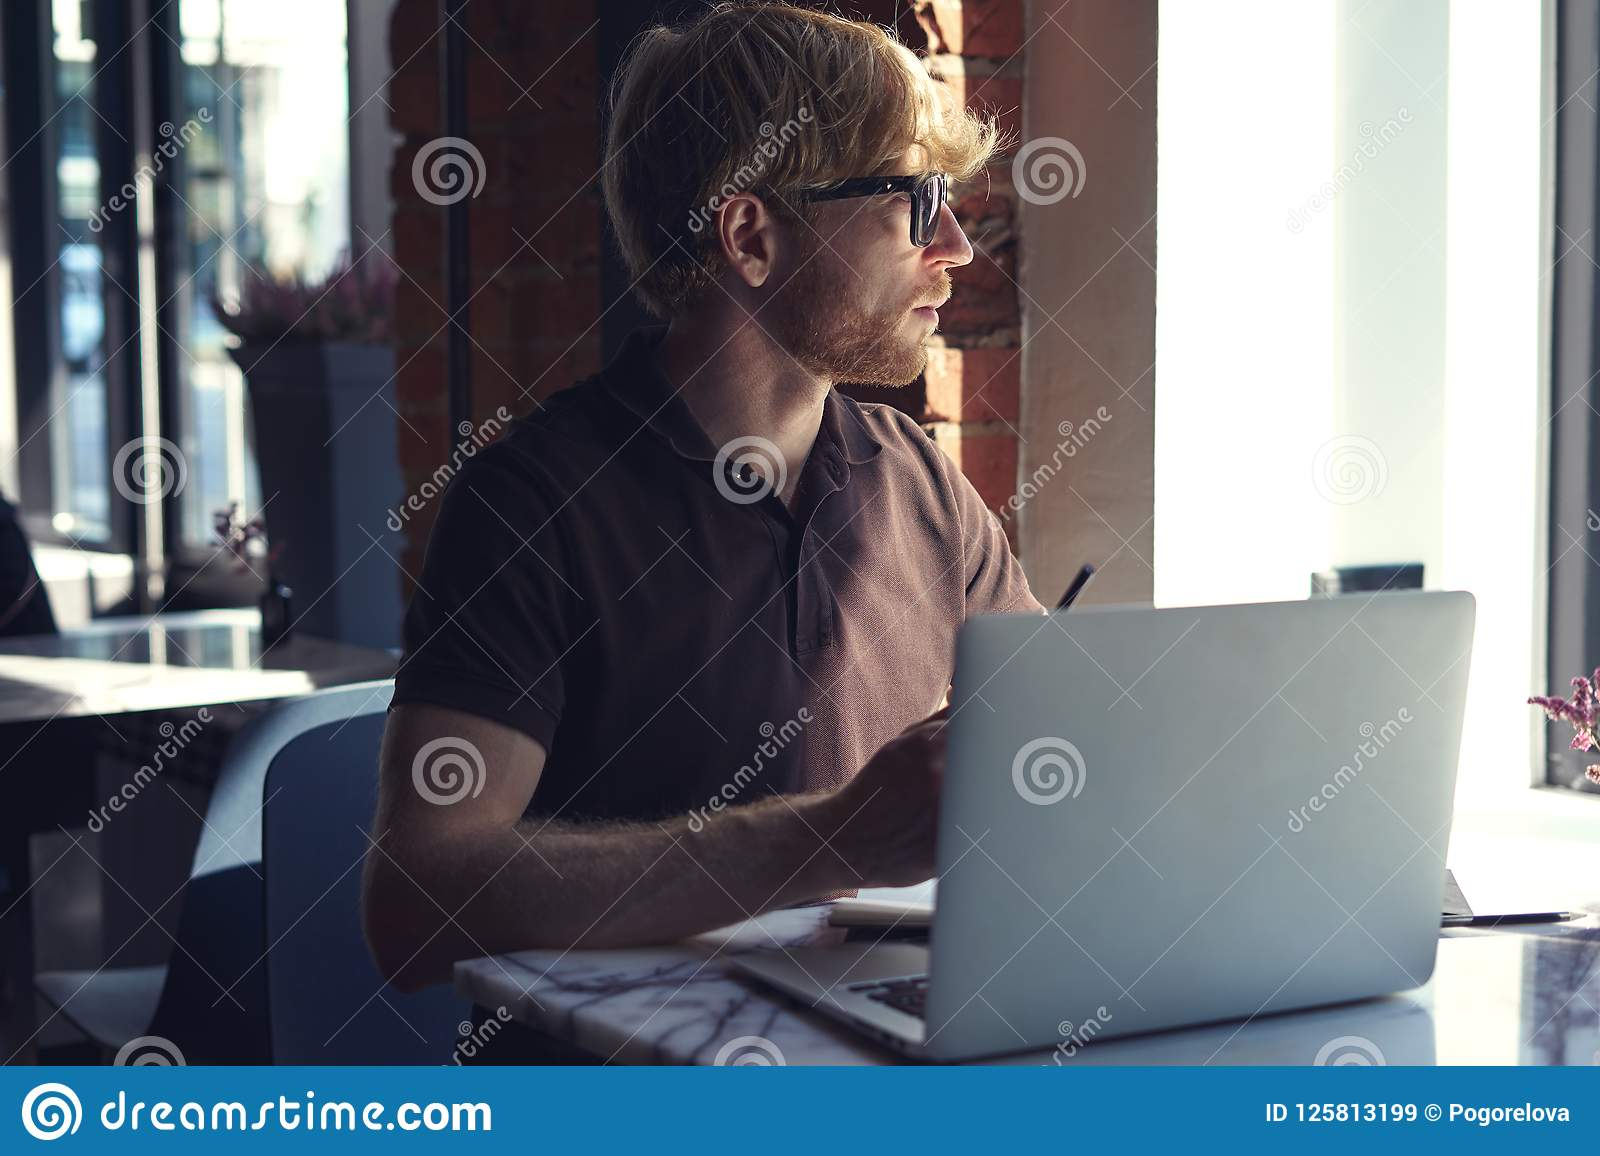 Man working at sunny office on laptop while sitting in cafe having coffee. Concept of young business people